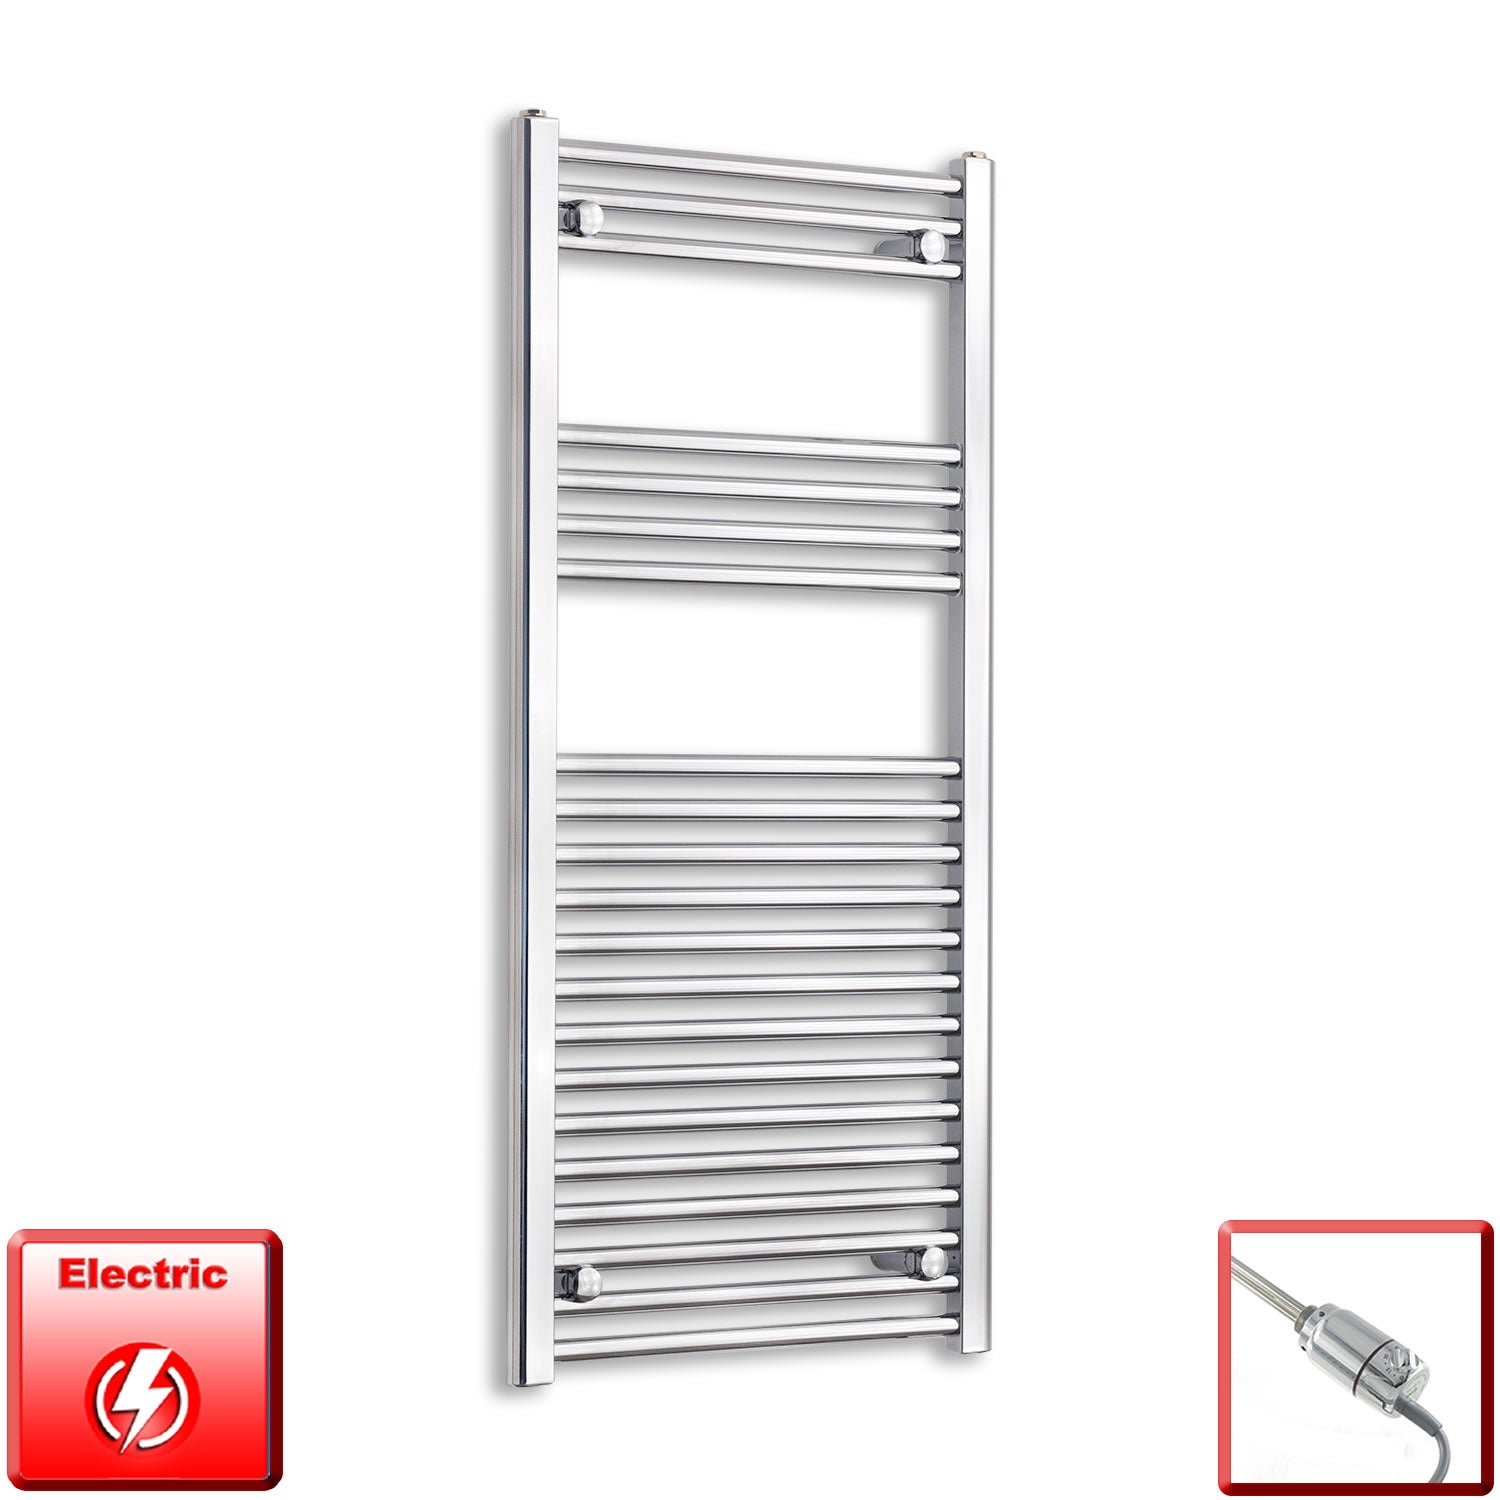 450mm Wide 1100mm High Pre-Filled Black Electric Towel Rail Radiator With Thermostatic GT Element